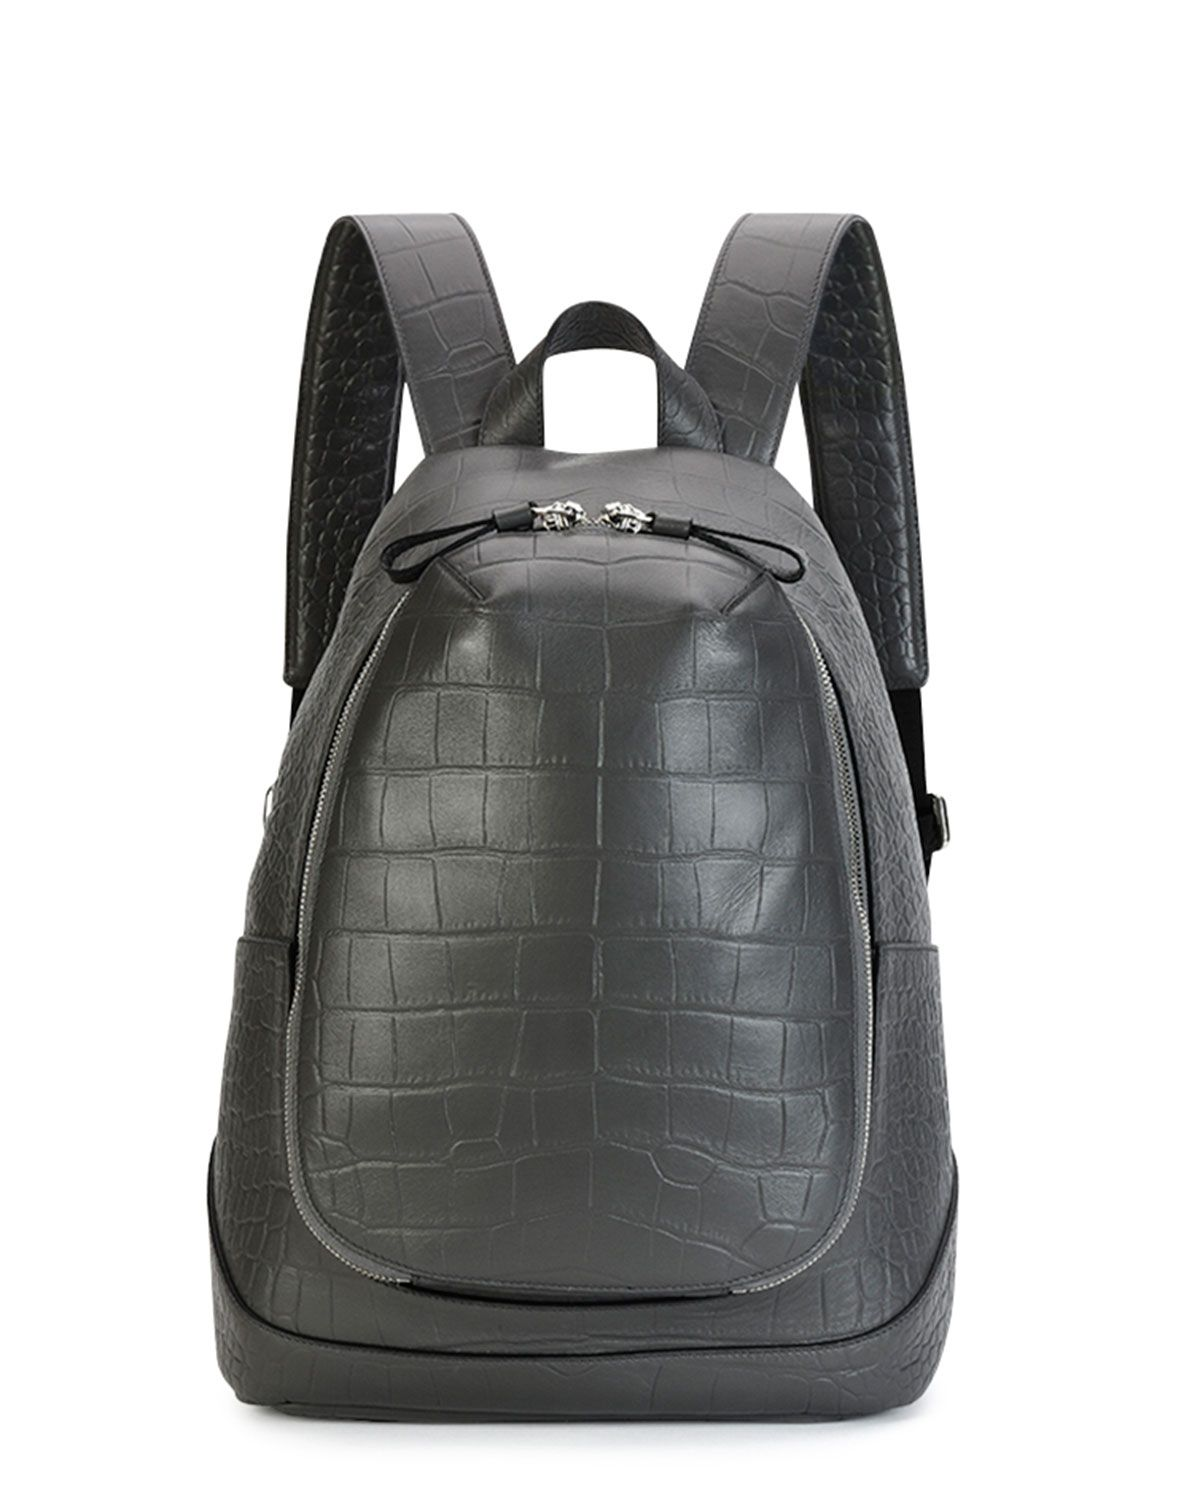 Croc-Embossed Leather Backpack, Gray, Grey - Alexander McQueen